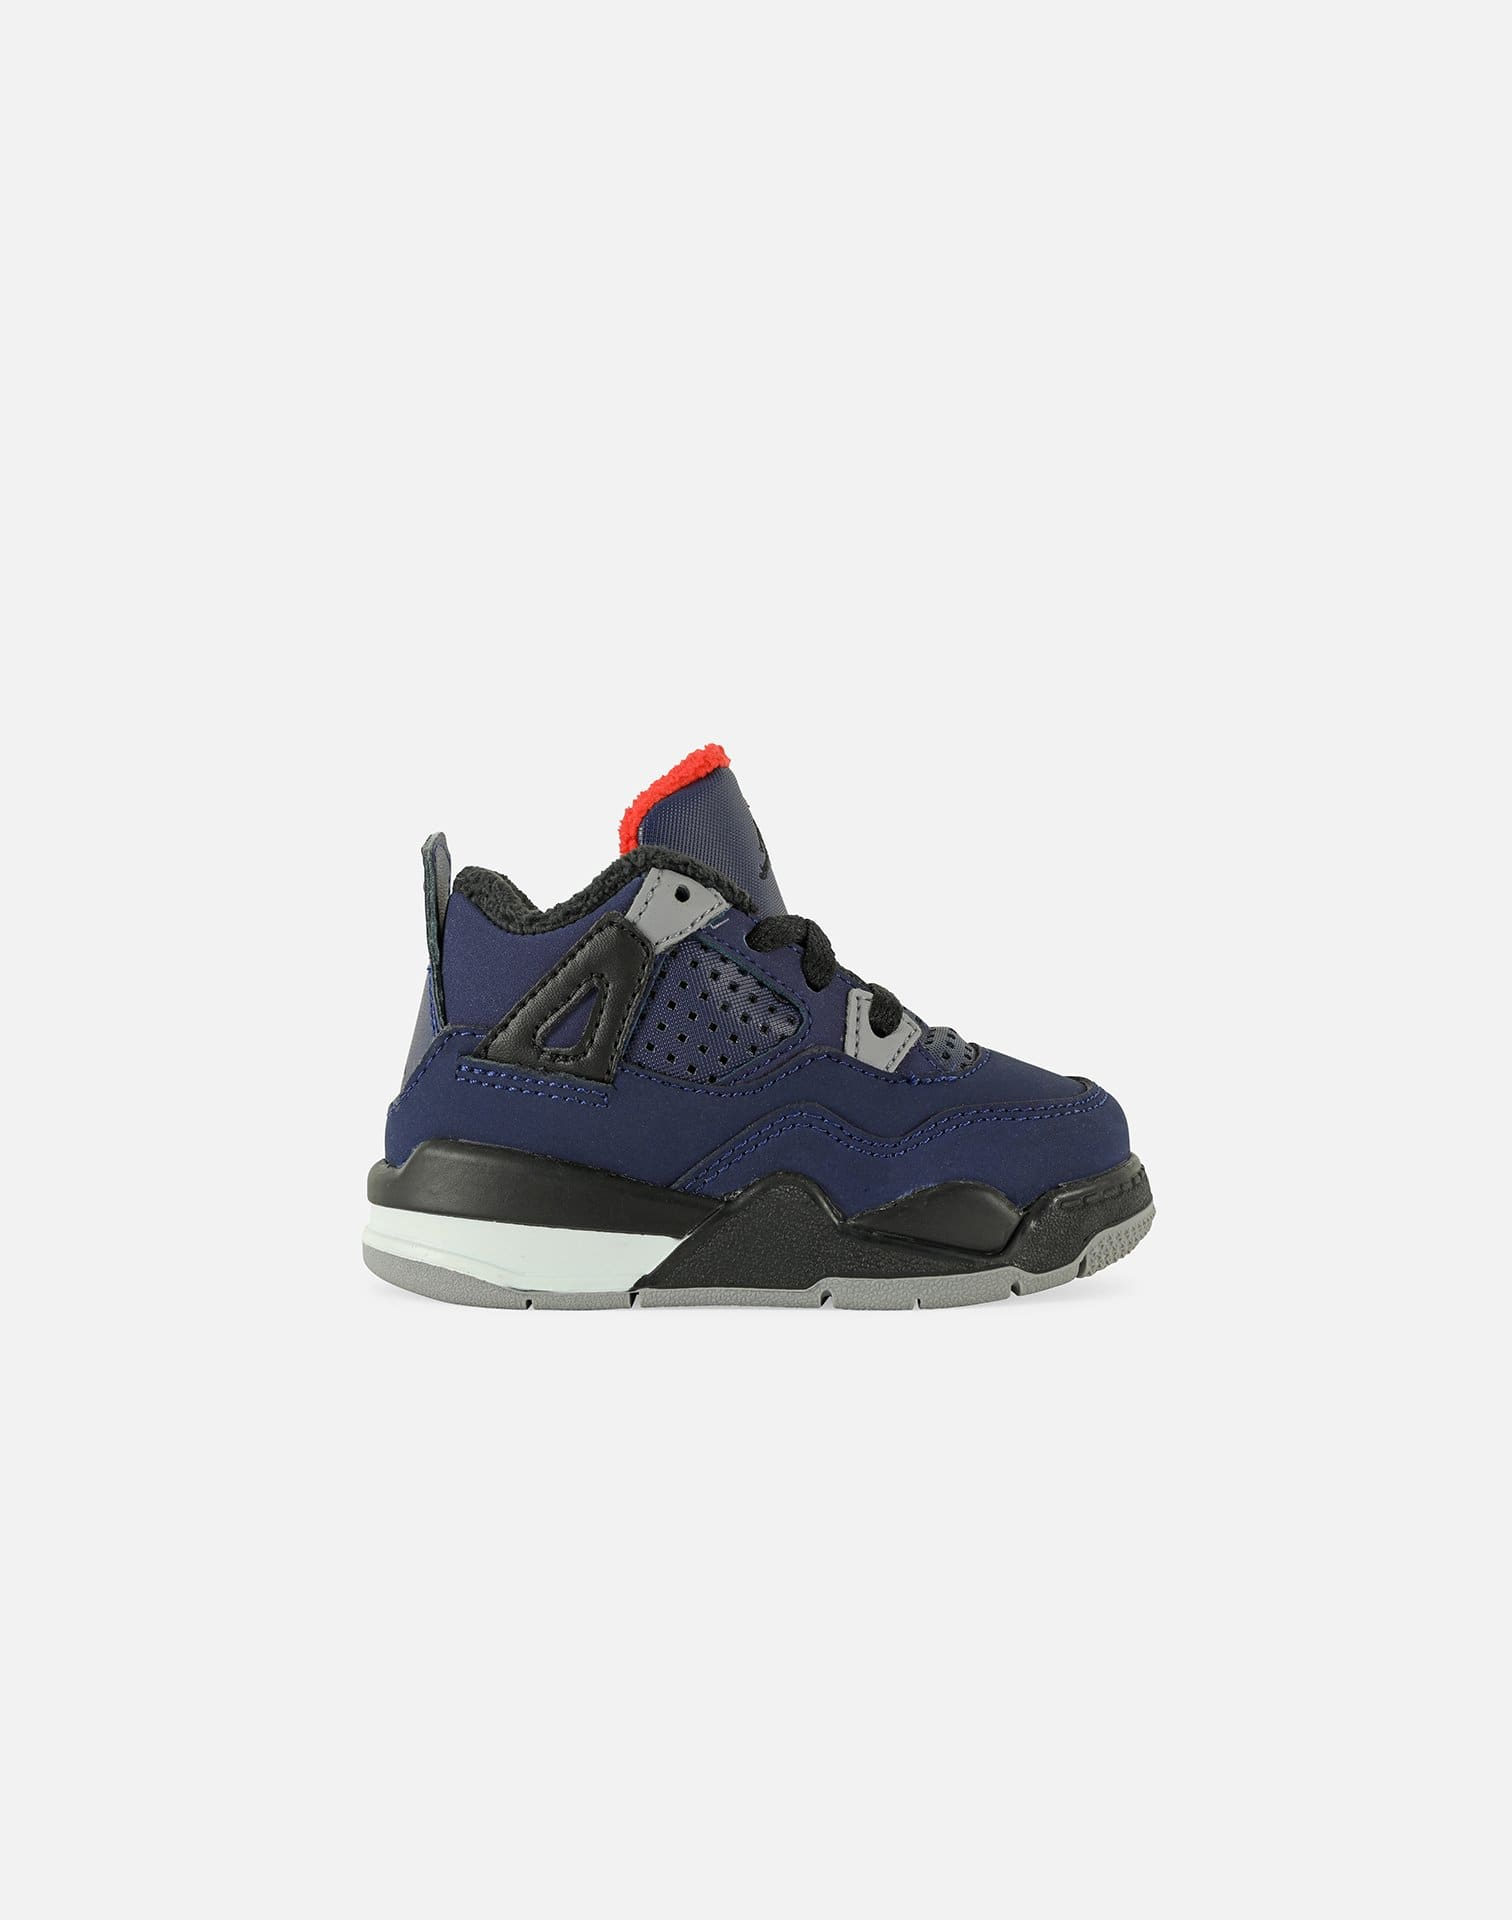 Jordan AIR JORDAN RETRO 4 WNTR INFANT